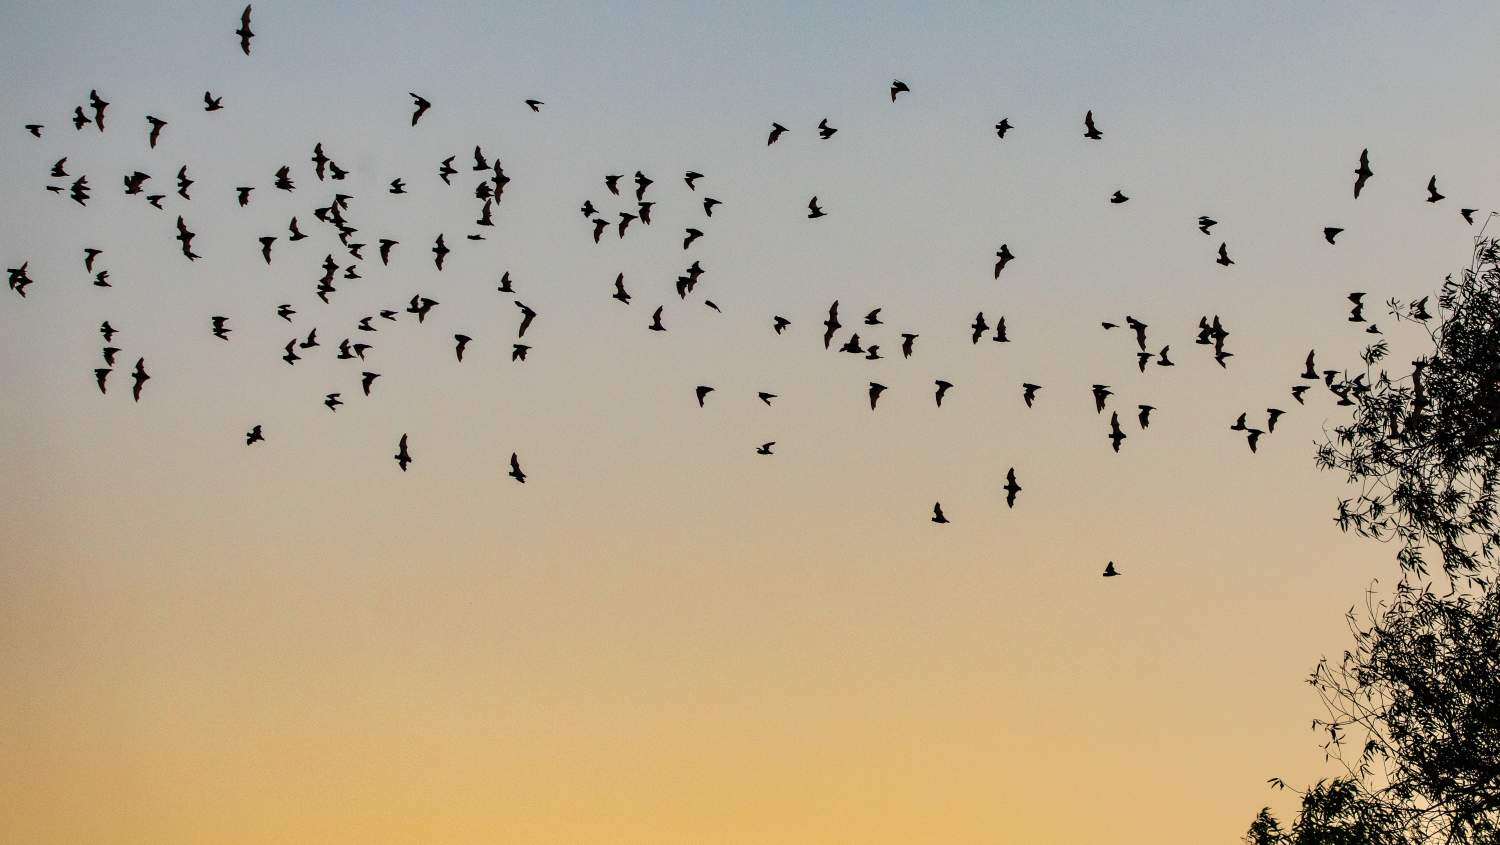 bats flying from a cave in YOLO Bypass Wildlife Area California